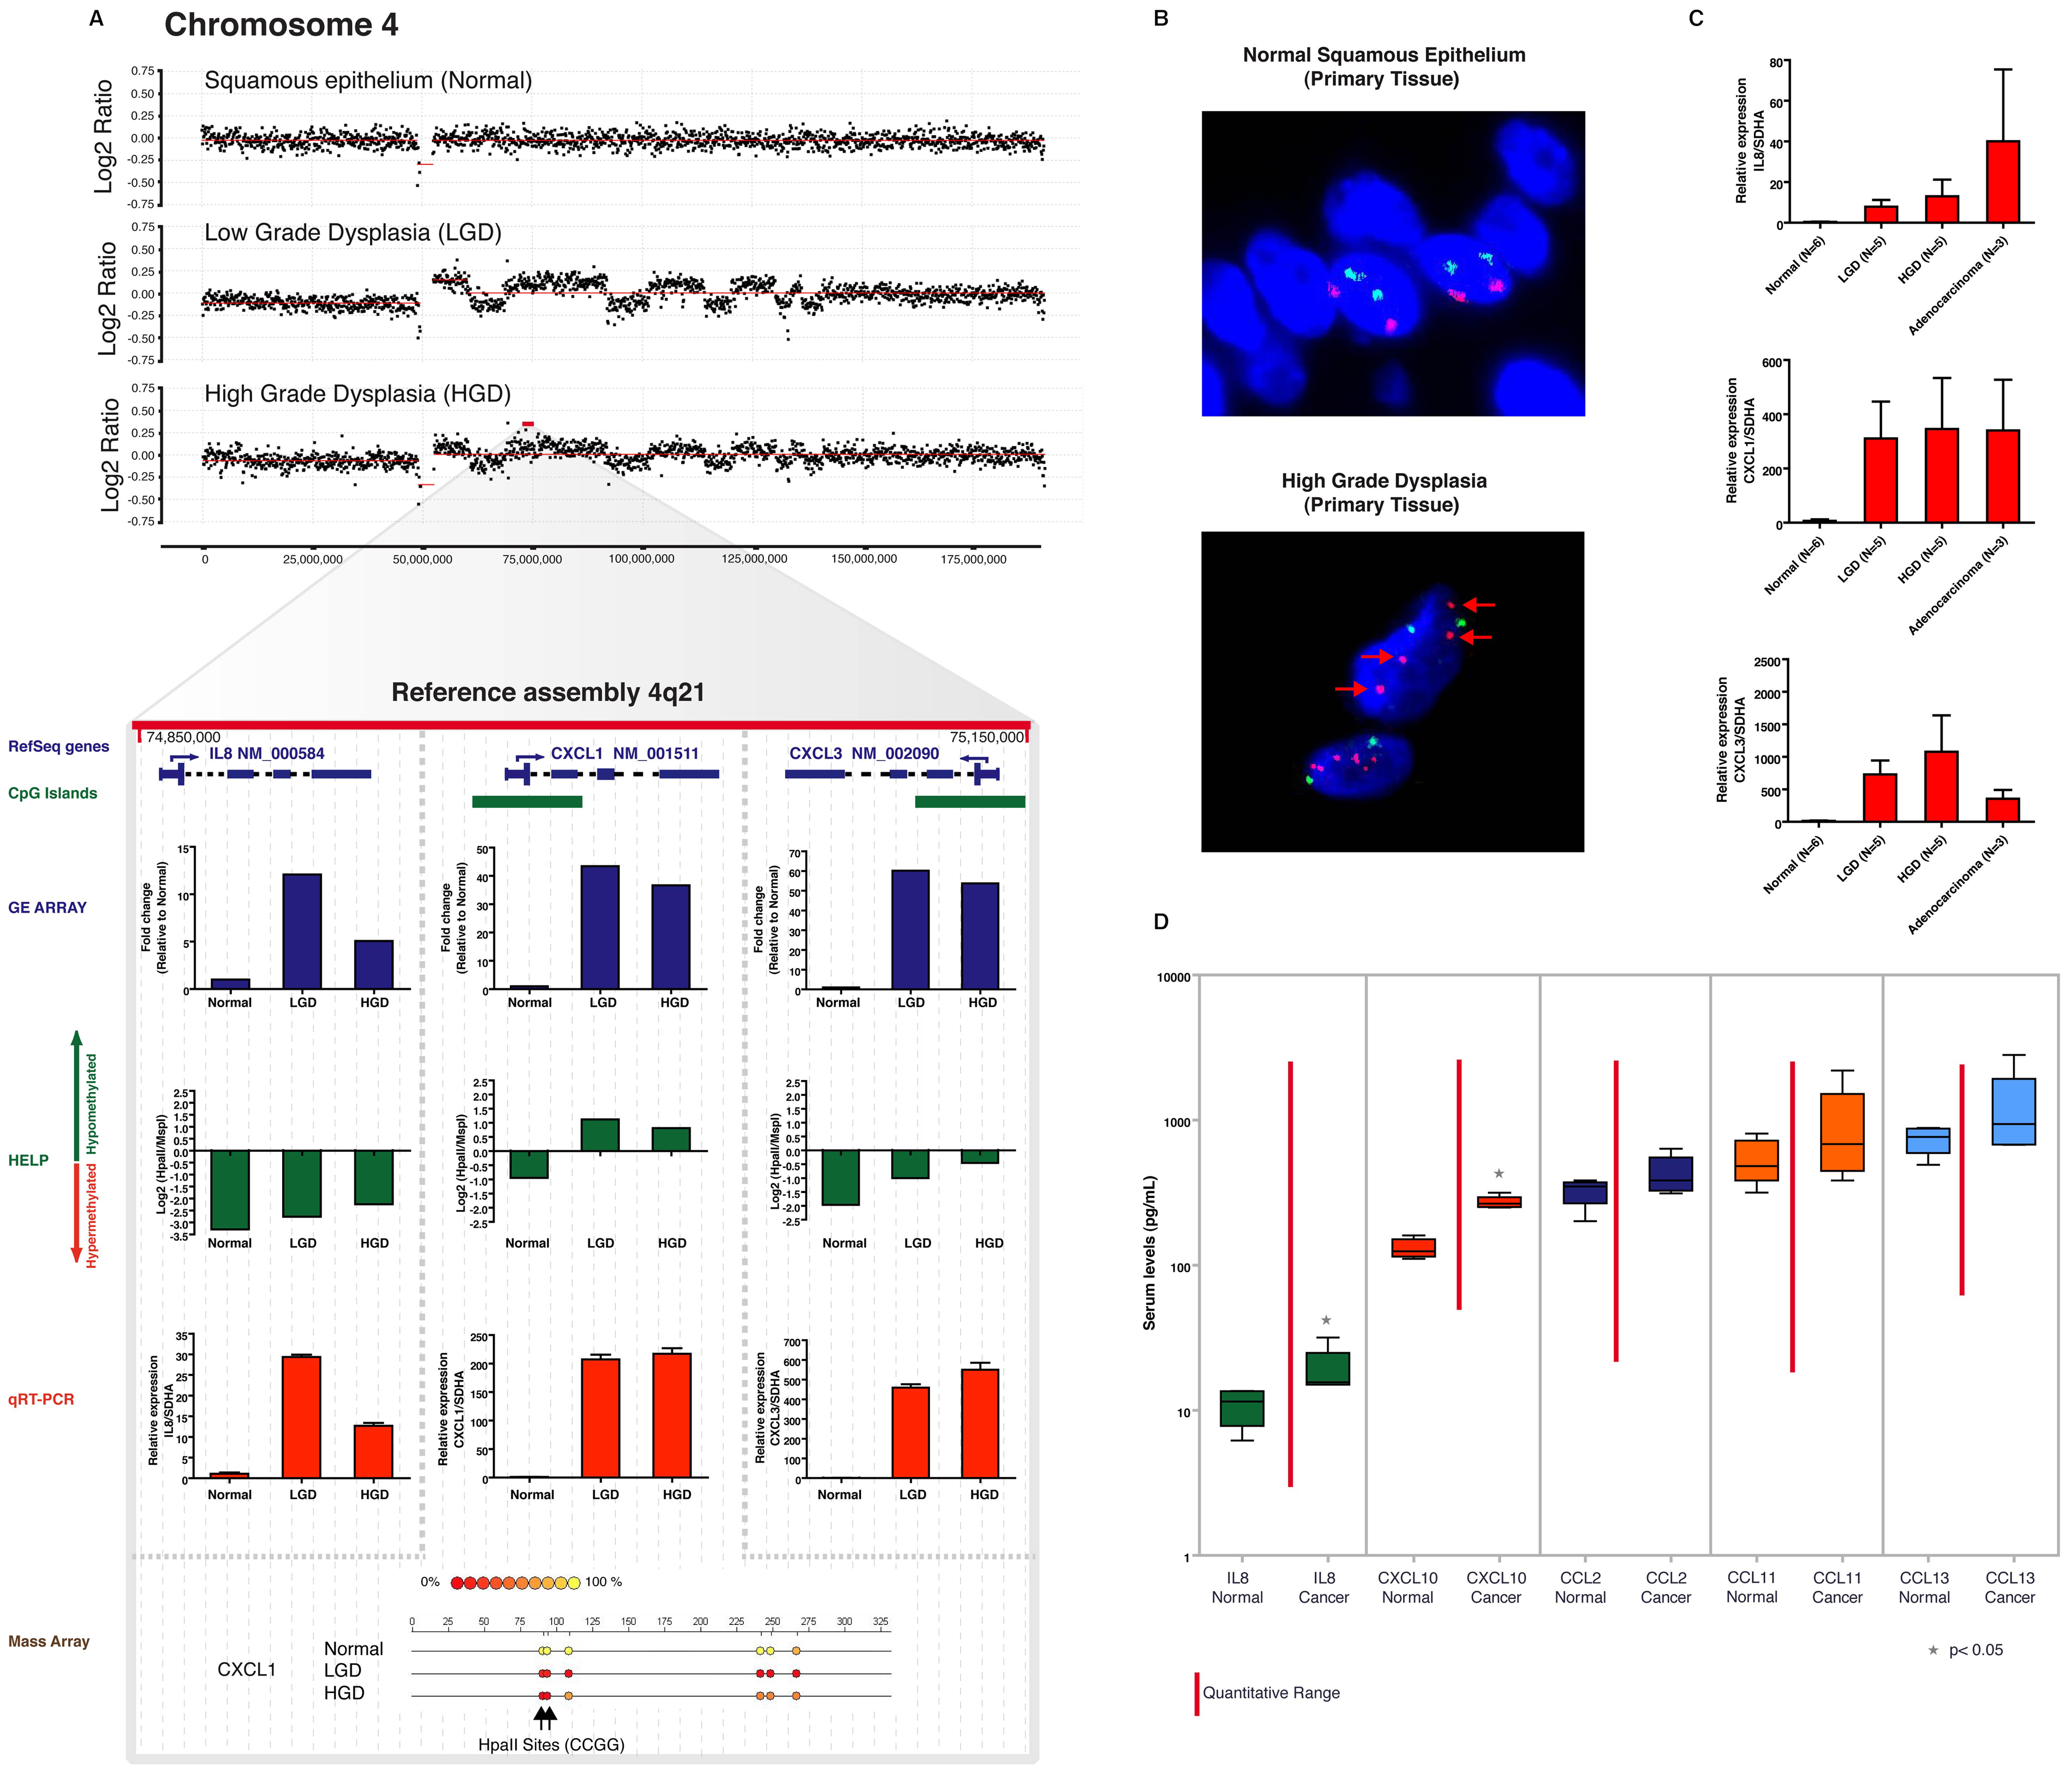 Aberrant expression of a 4q21 chemokine cluster by gene amplification and promoter hypomethylation during esophageal carcinogenesis.